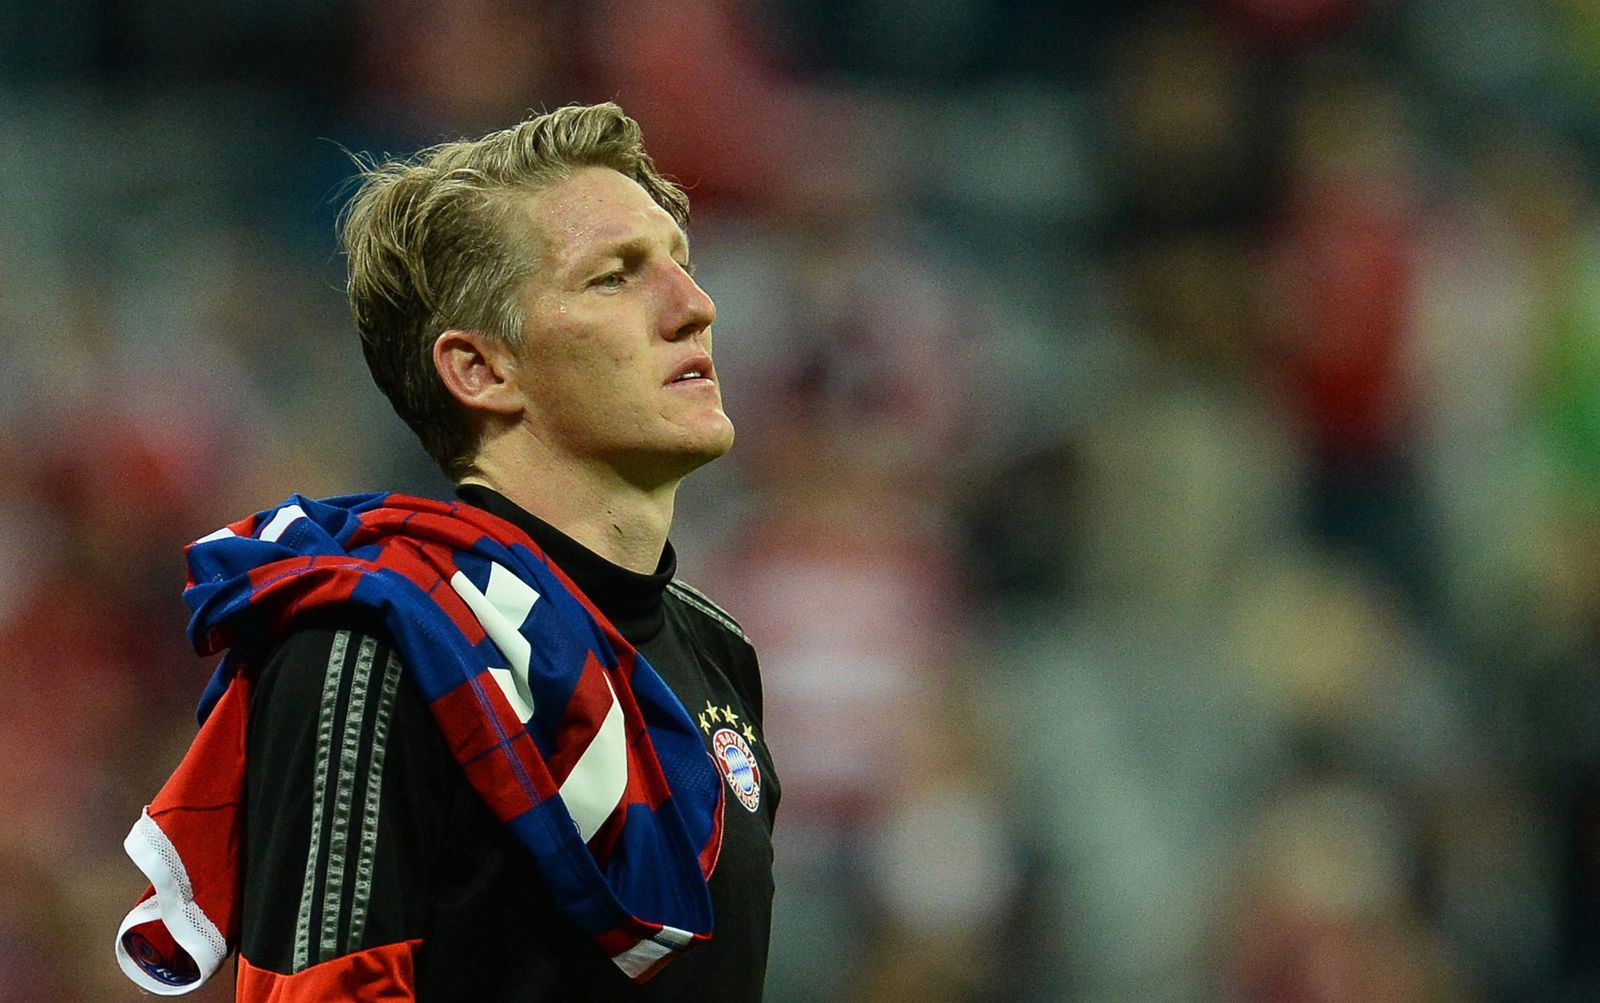 Manchester United signs Bastian Schweinsteiger as media reports